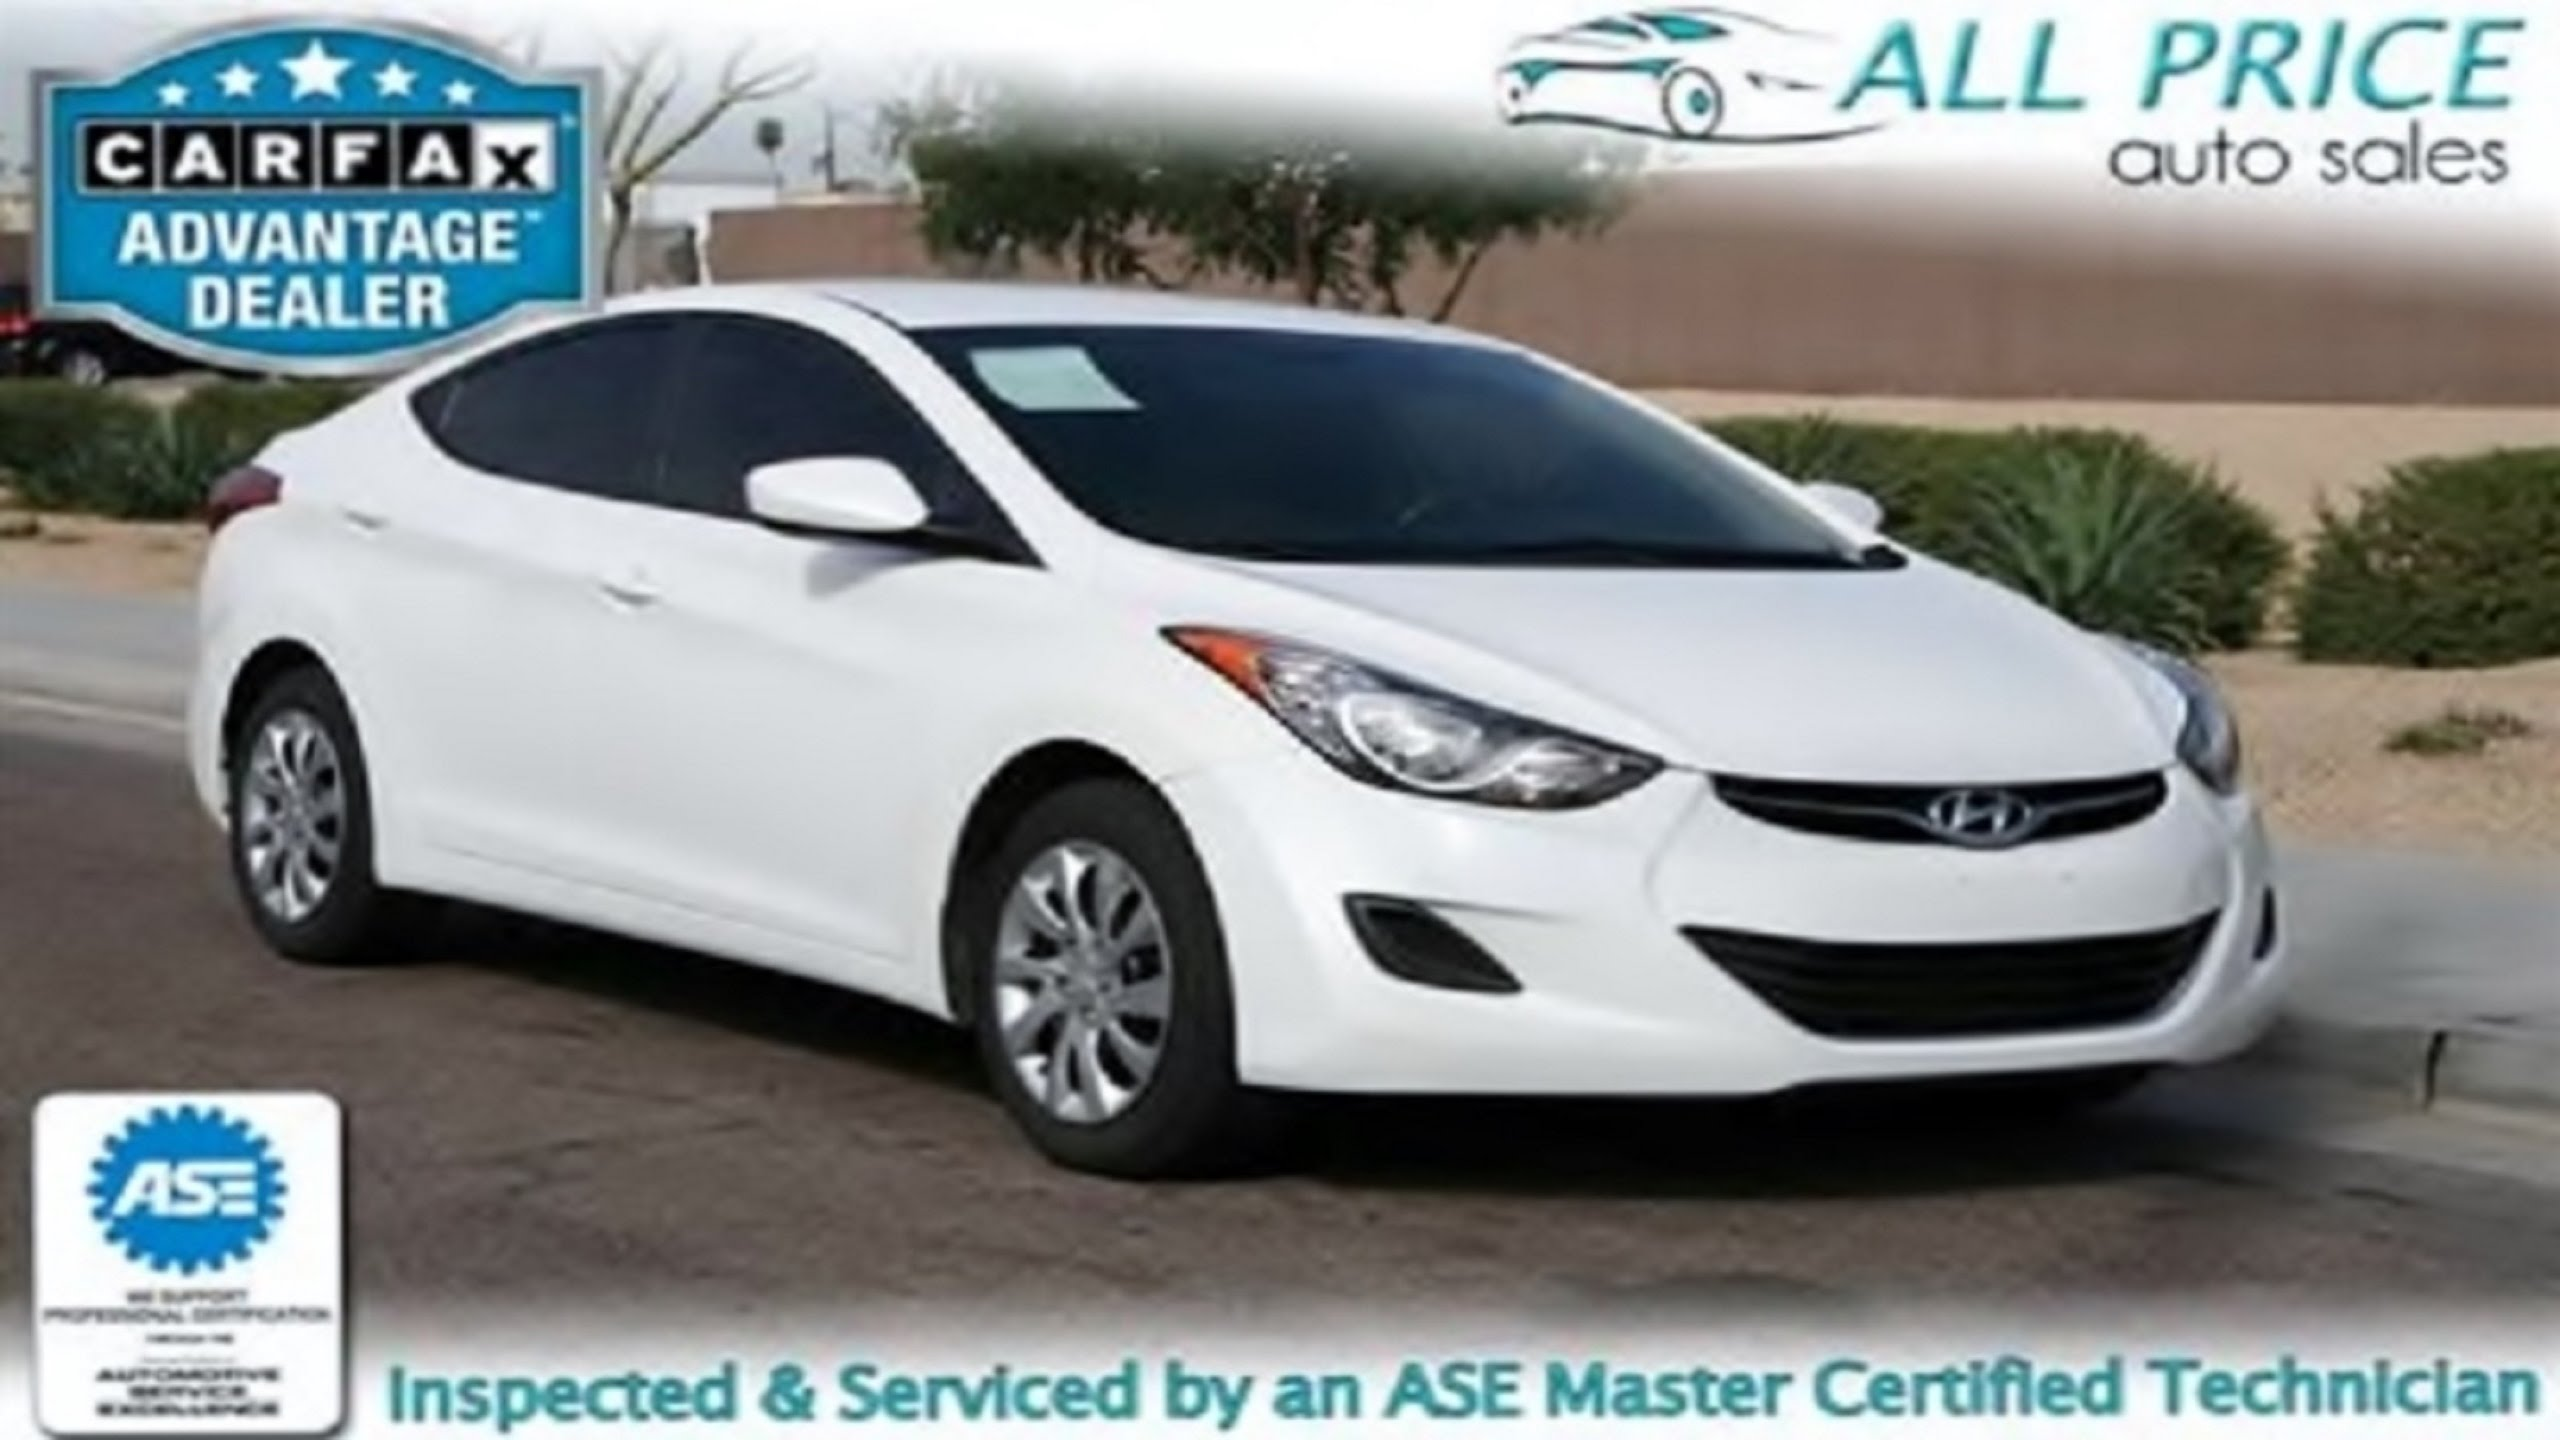 used cars for sale with prices lovely used cars for sale in phoenix az 2012 hyundai